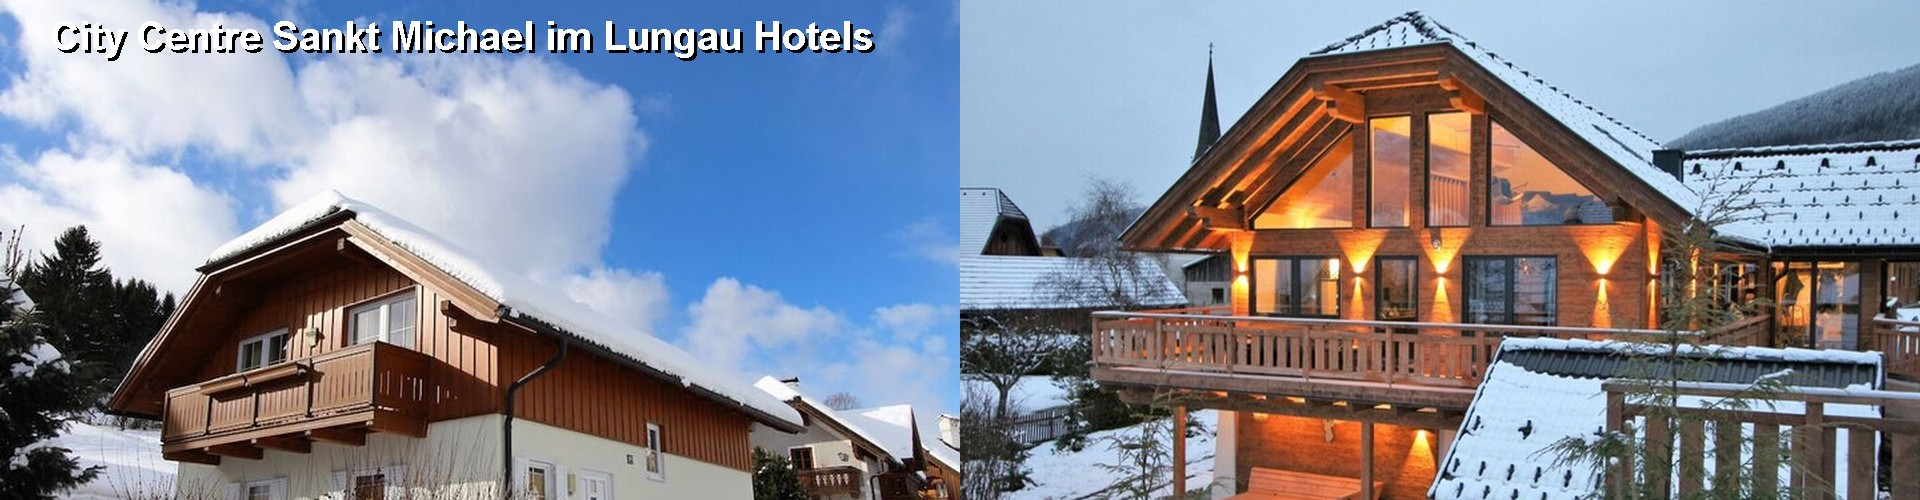 3 Best Hotels near City Centre Sankt Michael im Lungau